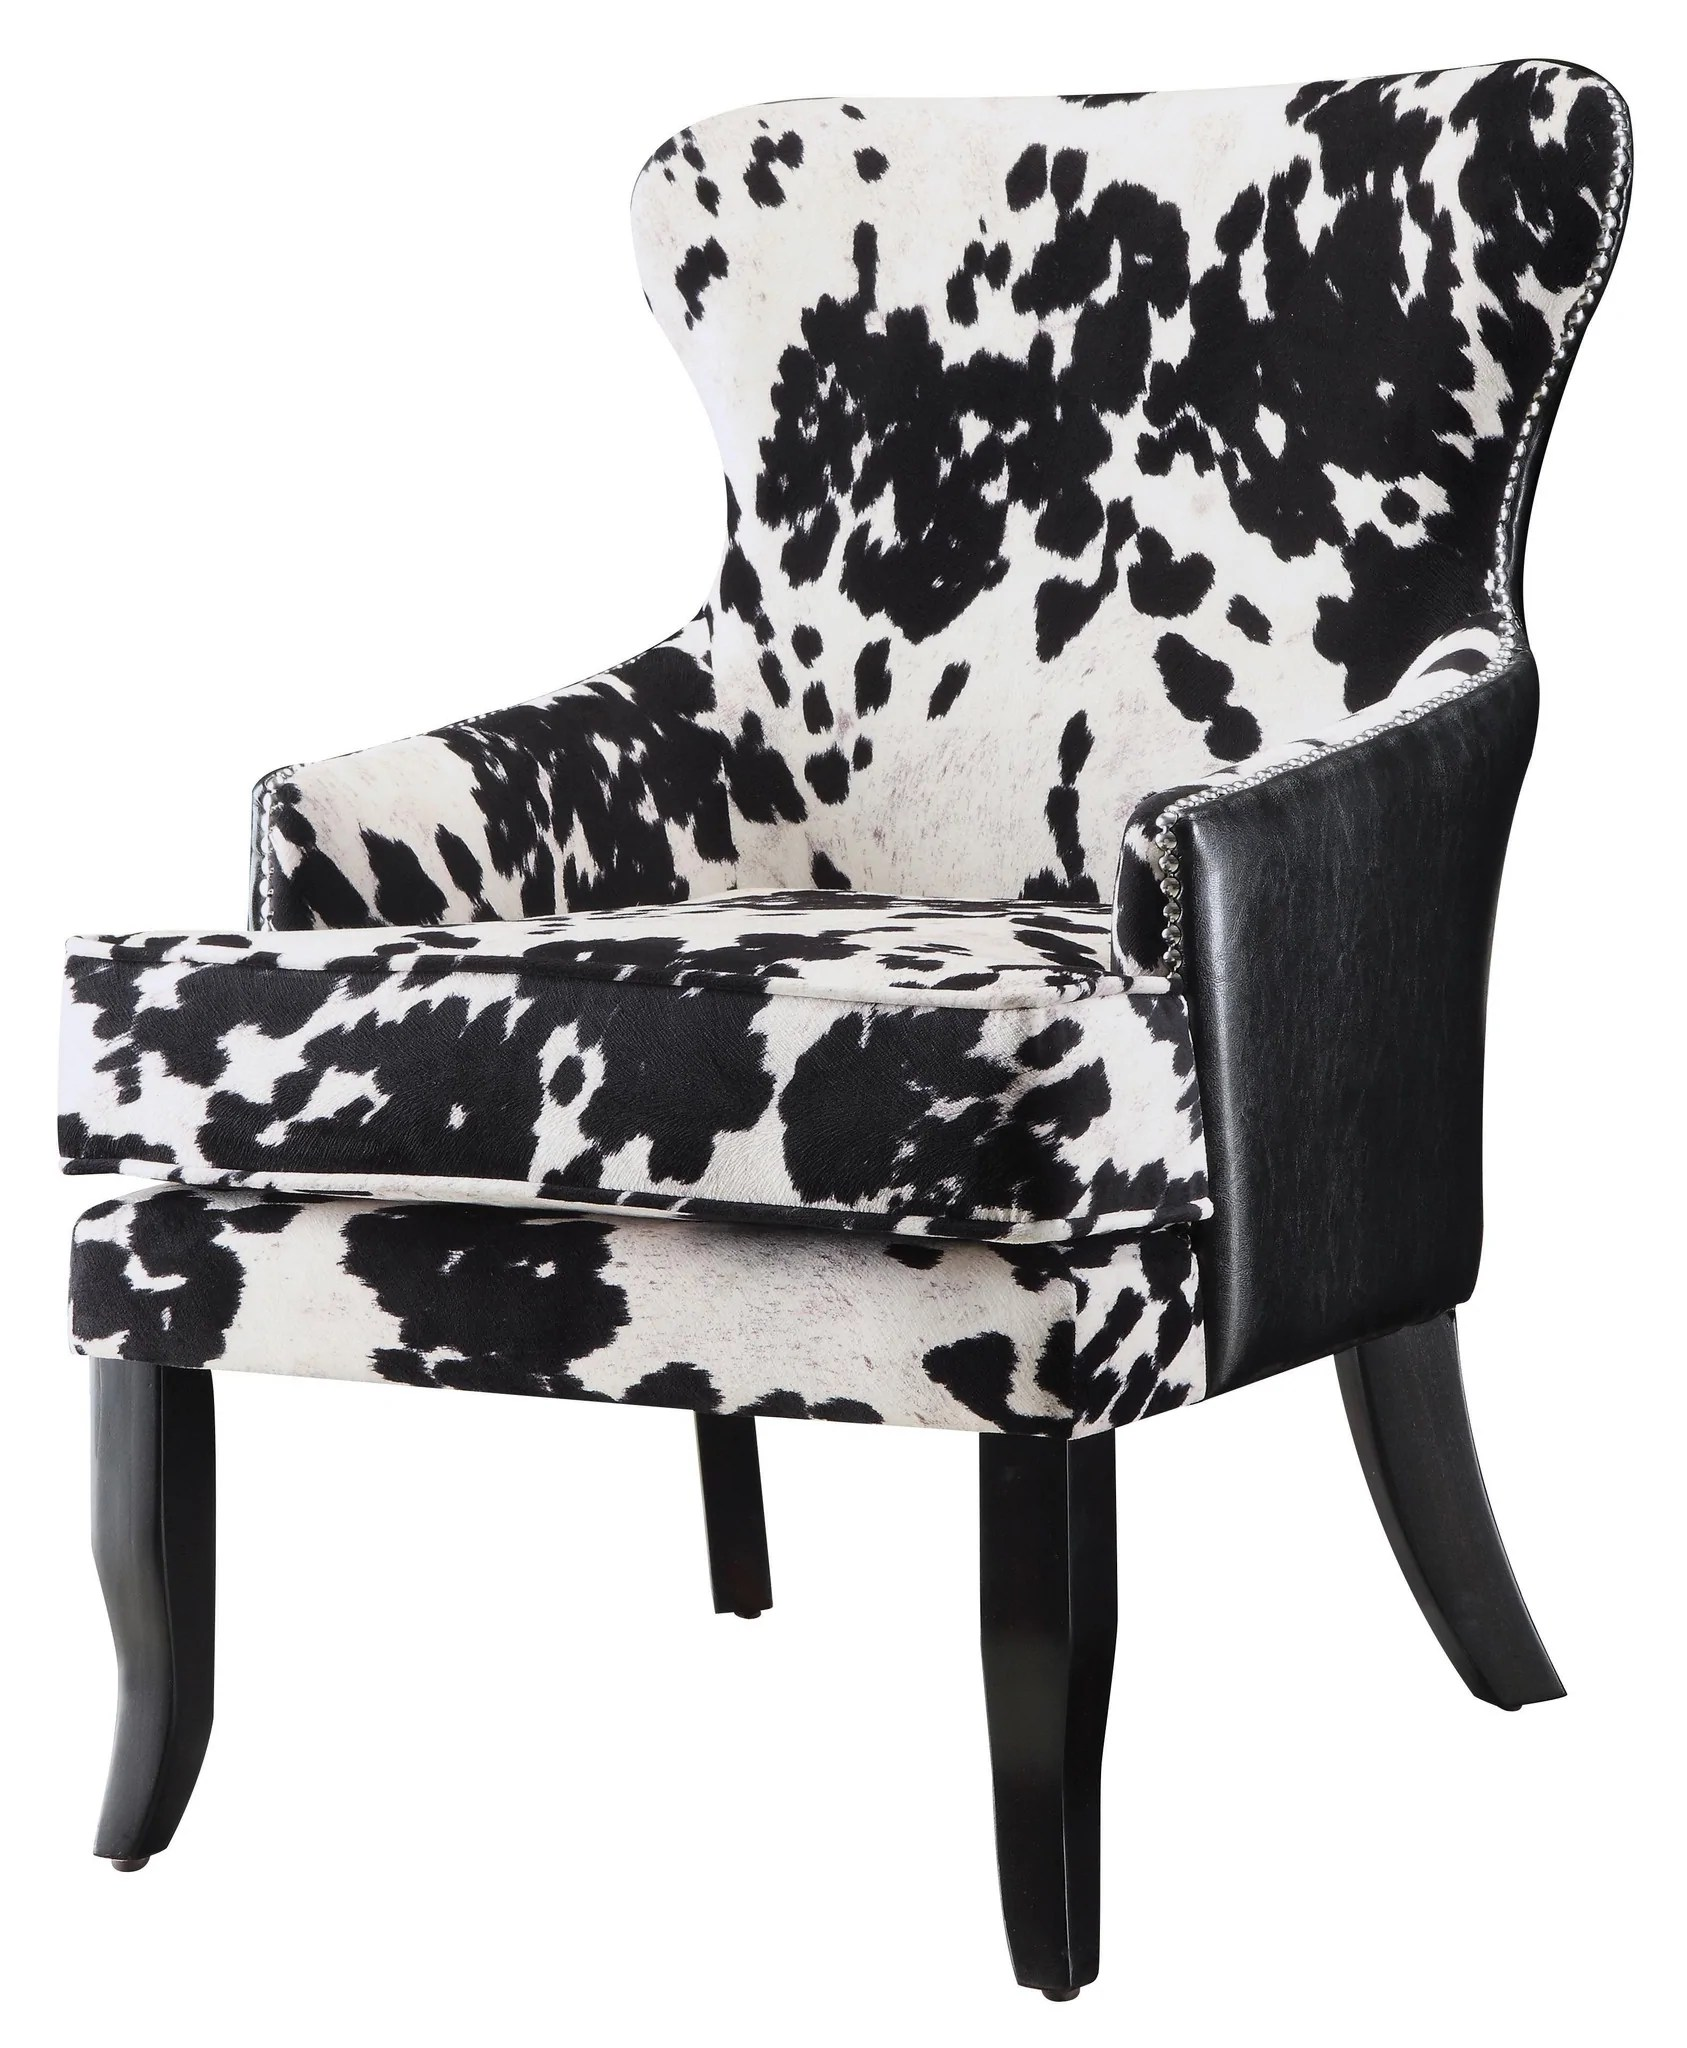 Cow Print Chair Mooey Chair Cow Print Chair Modern Chair Black And